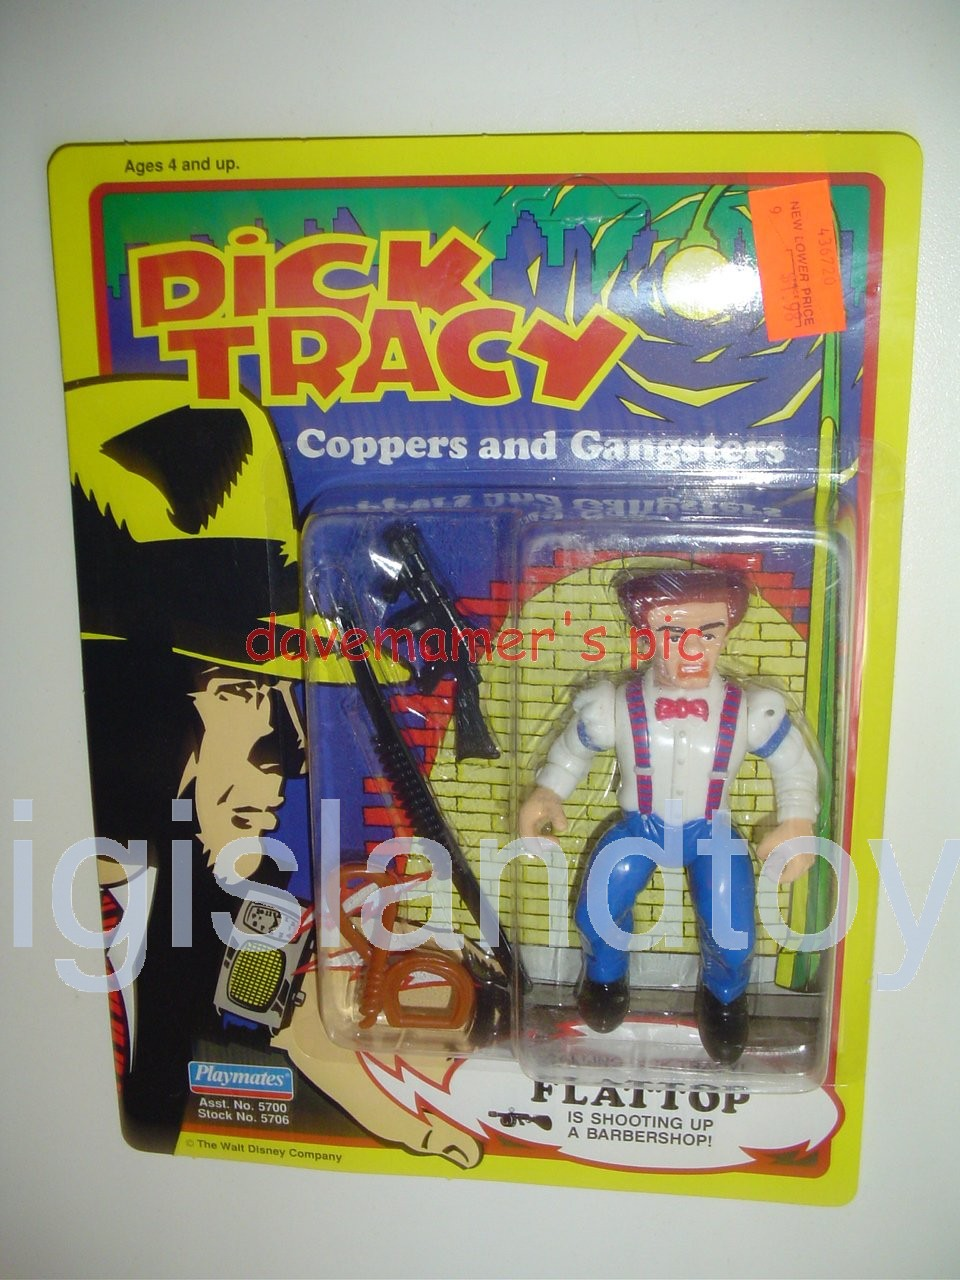 Dick Tracy Coppers and Gangsters   FLATTOP